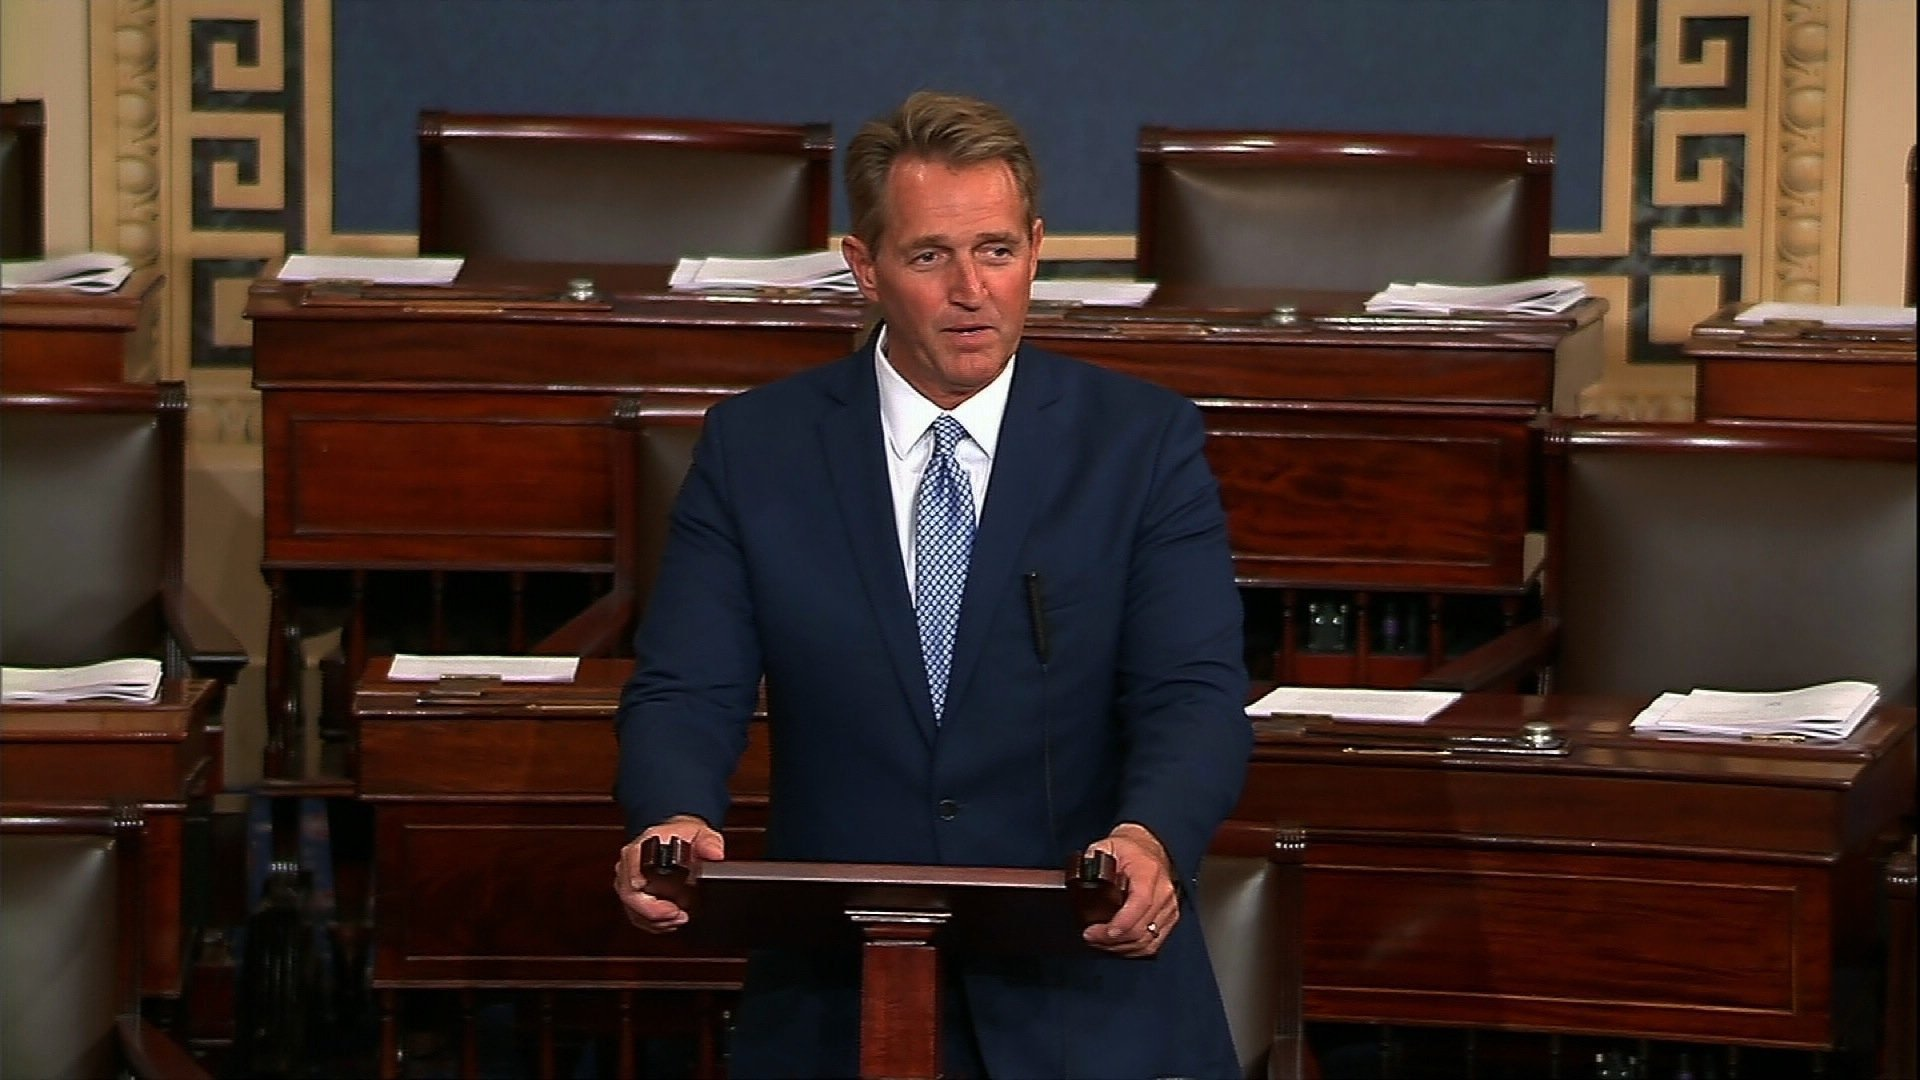 Arizona Republican Sen. Jeff Flake has threatened to introduce legislation to nullify the President's tariffs if they are anything like what Donald Trump is predicting.